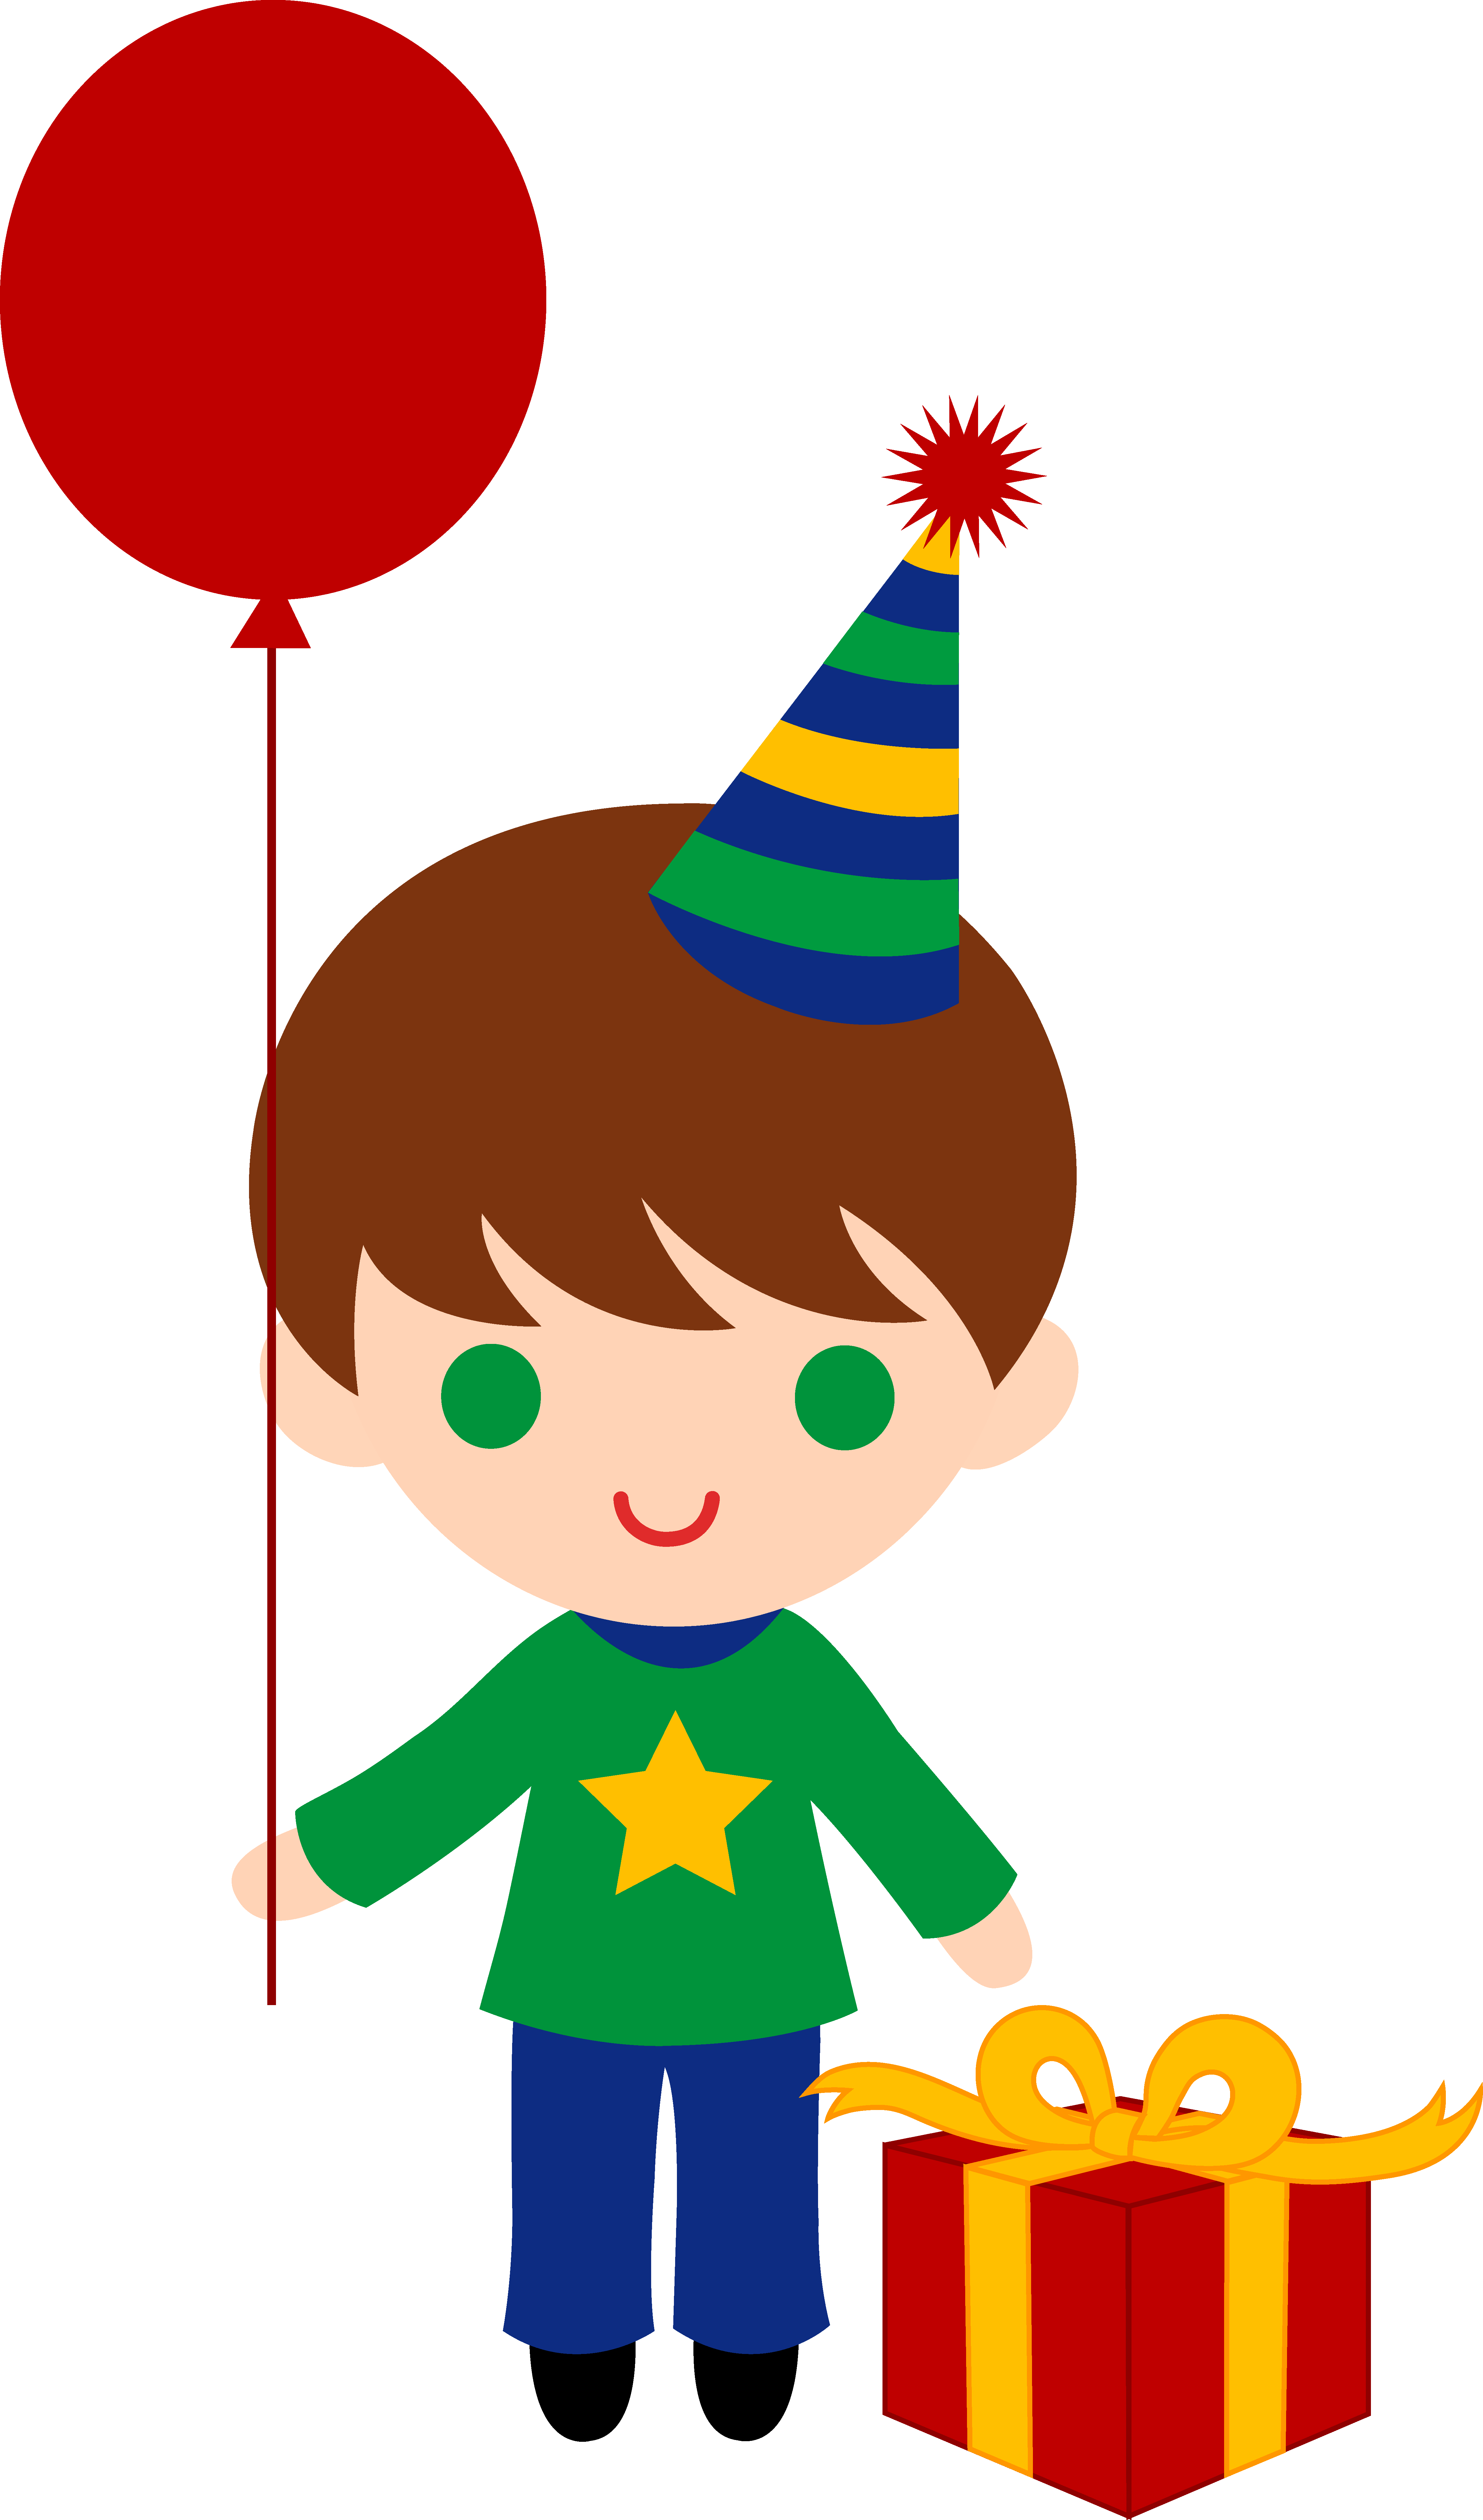 clipart freeuse download Hungry kid clipart. Little birthday boy clip